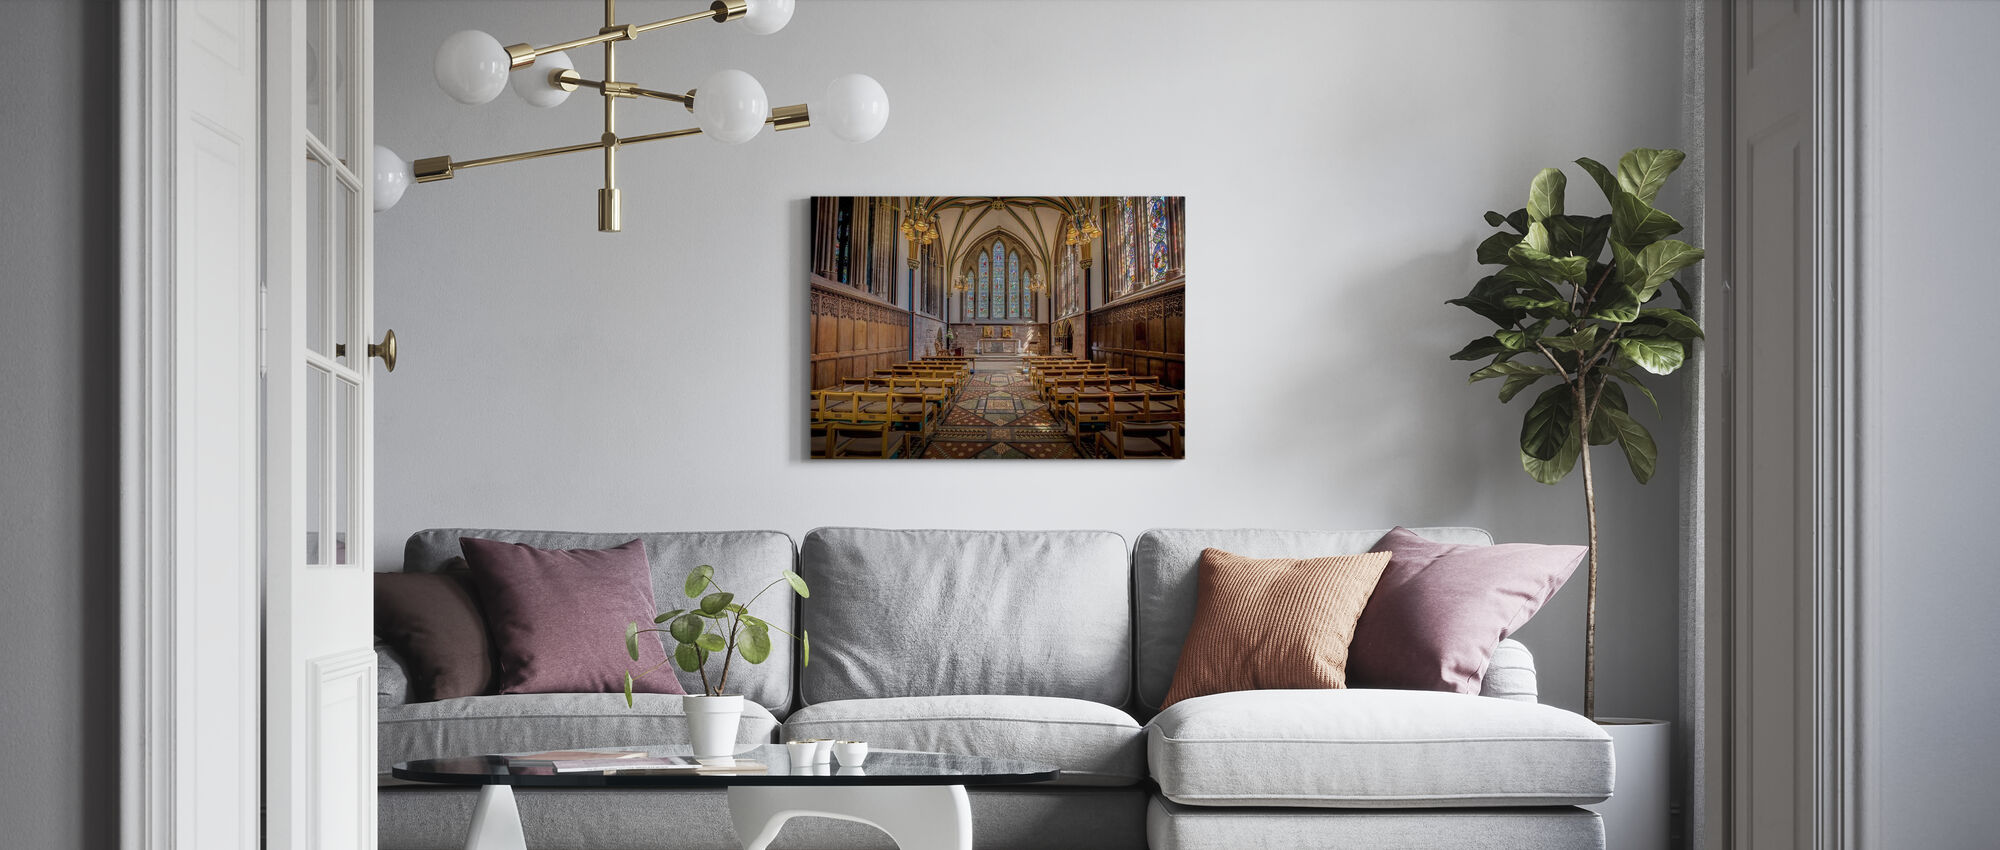 Vrouw-kapel - Canvas print - Woonkamer